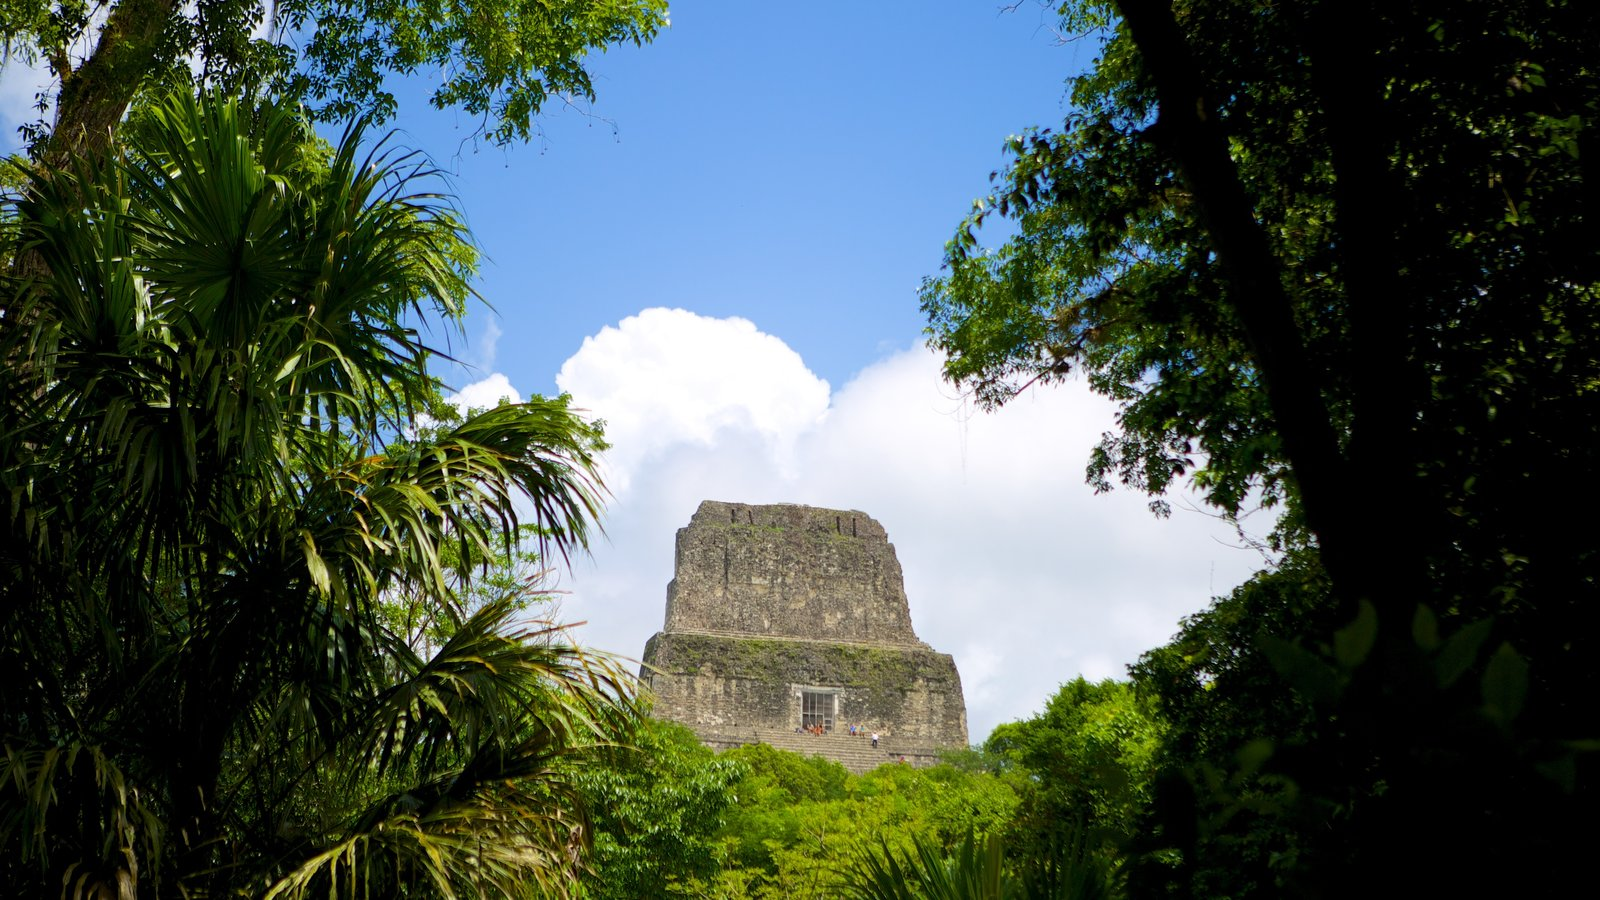 Tikal which includes building ruins, heritage elements and forests